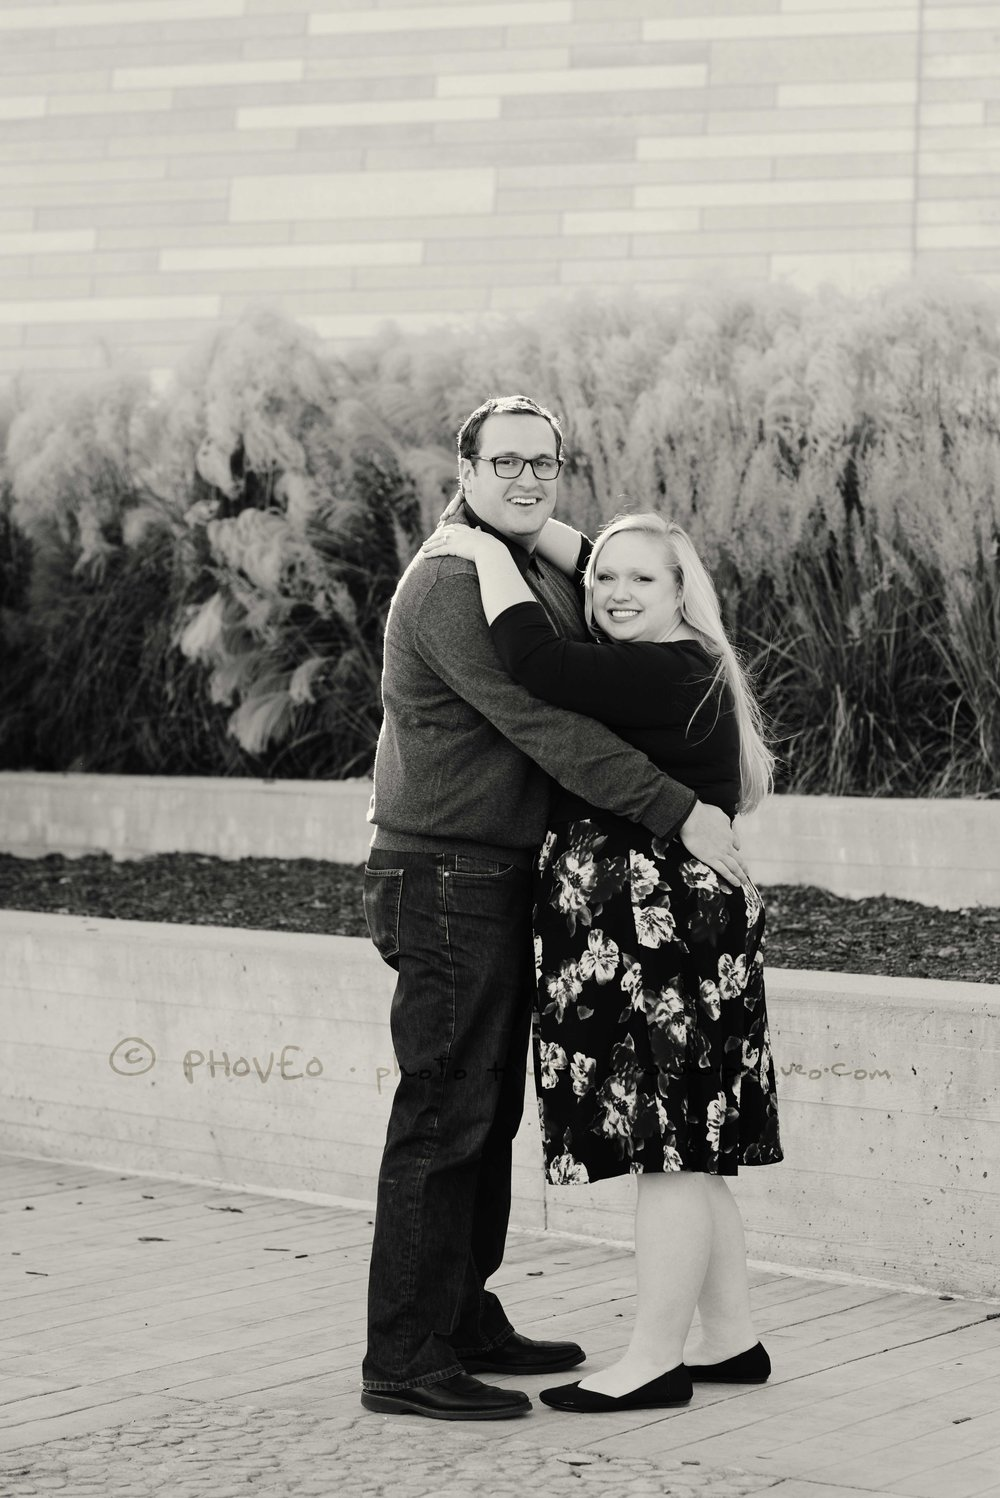 WM_20161113_Amy+Aaron_6bw.jpg